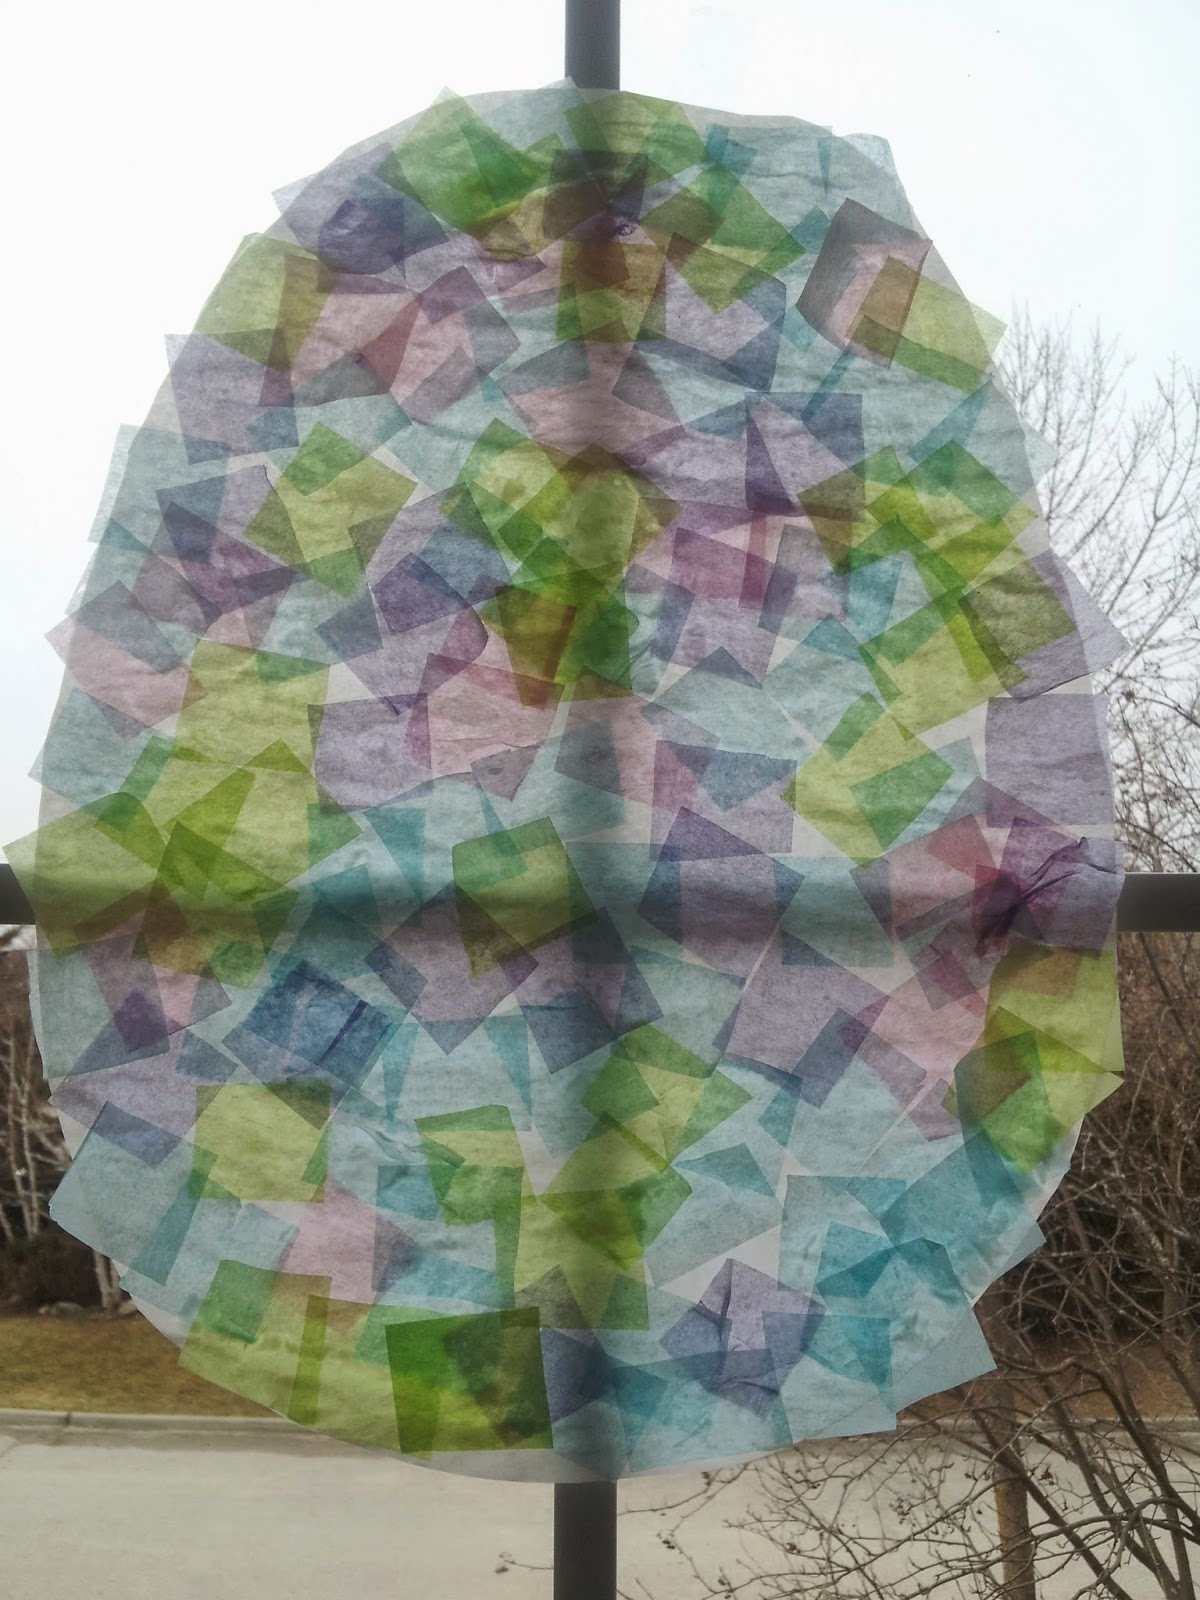 Tissue paper Easter egg craft, stained glass, crafts, kids crafts